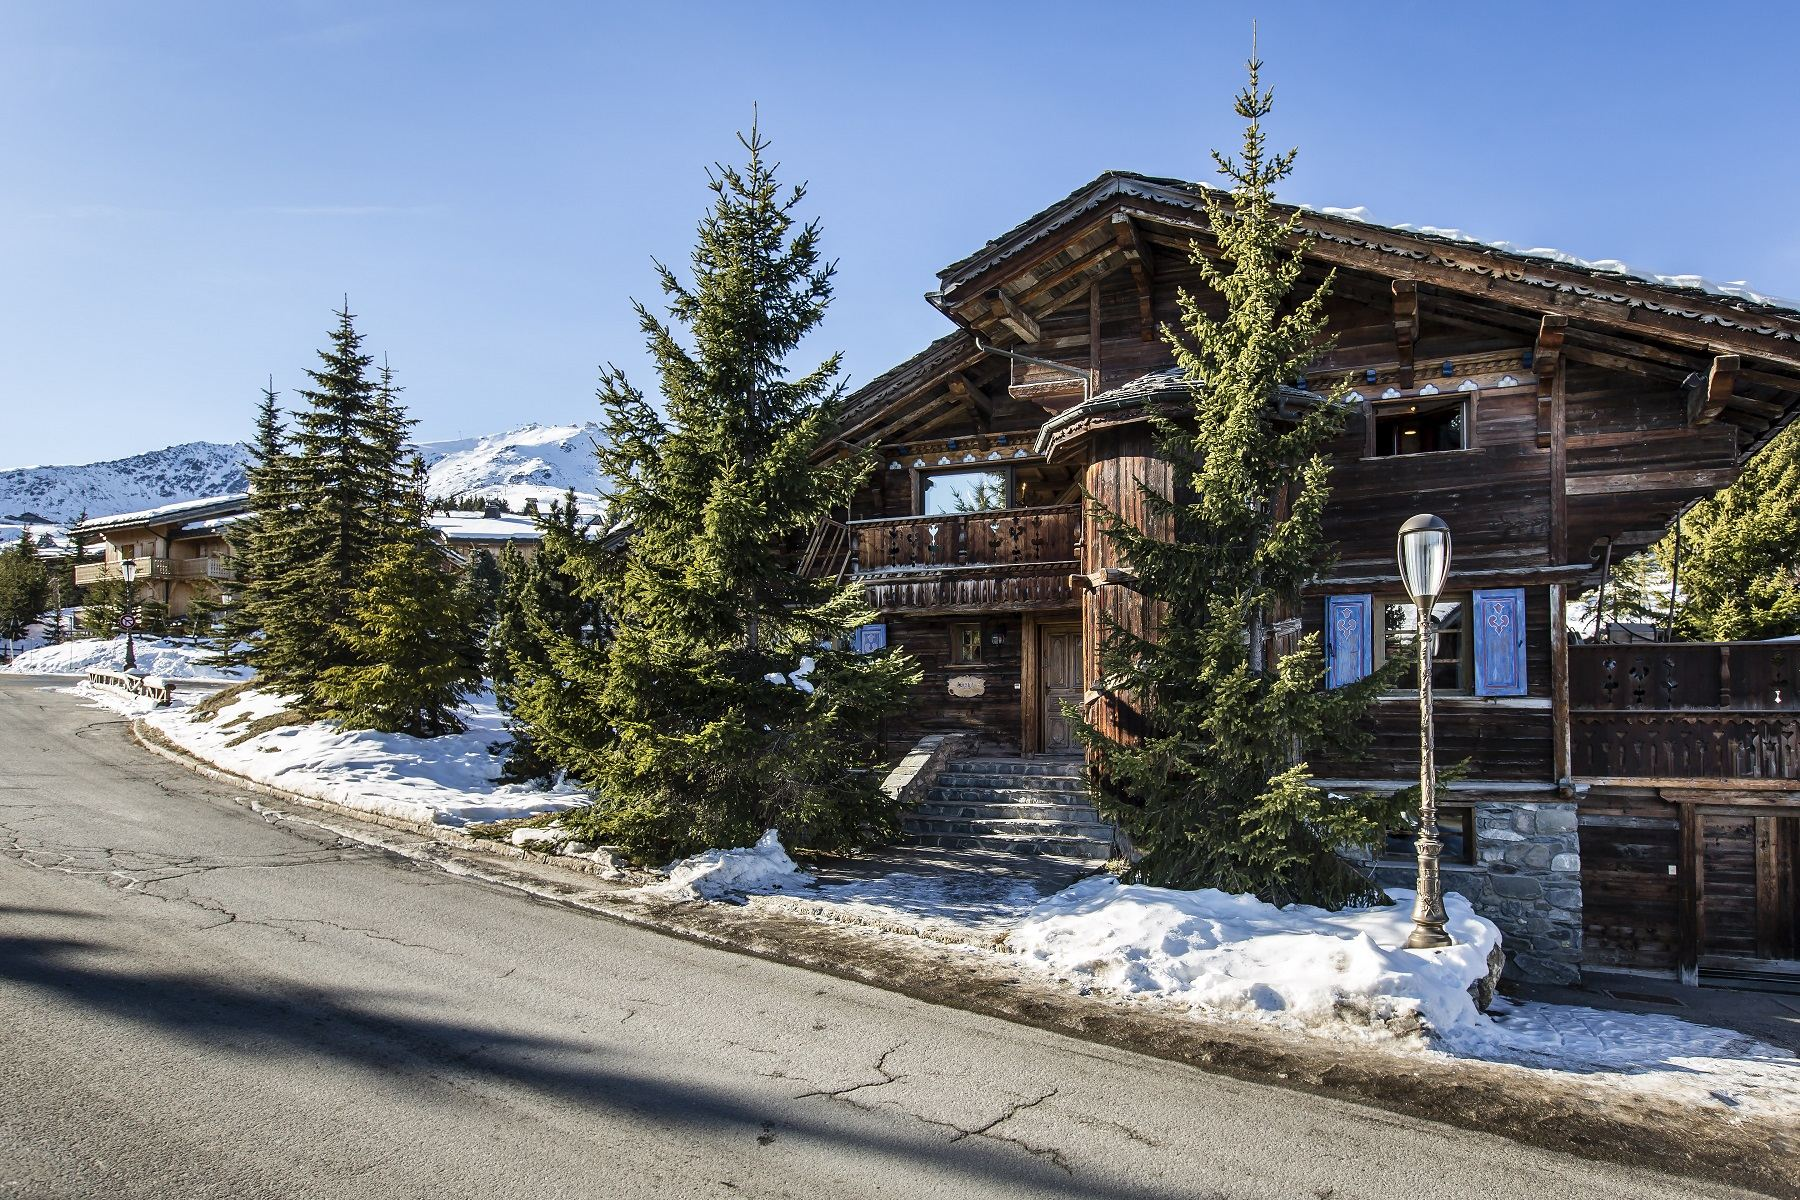 Single Family Home for Rent at Chalet for rent in Courchevel Aiguille du Fruit Courchevel, Rhone-Alpes, 73120 France